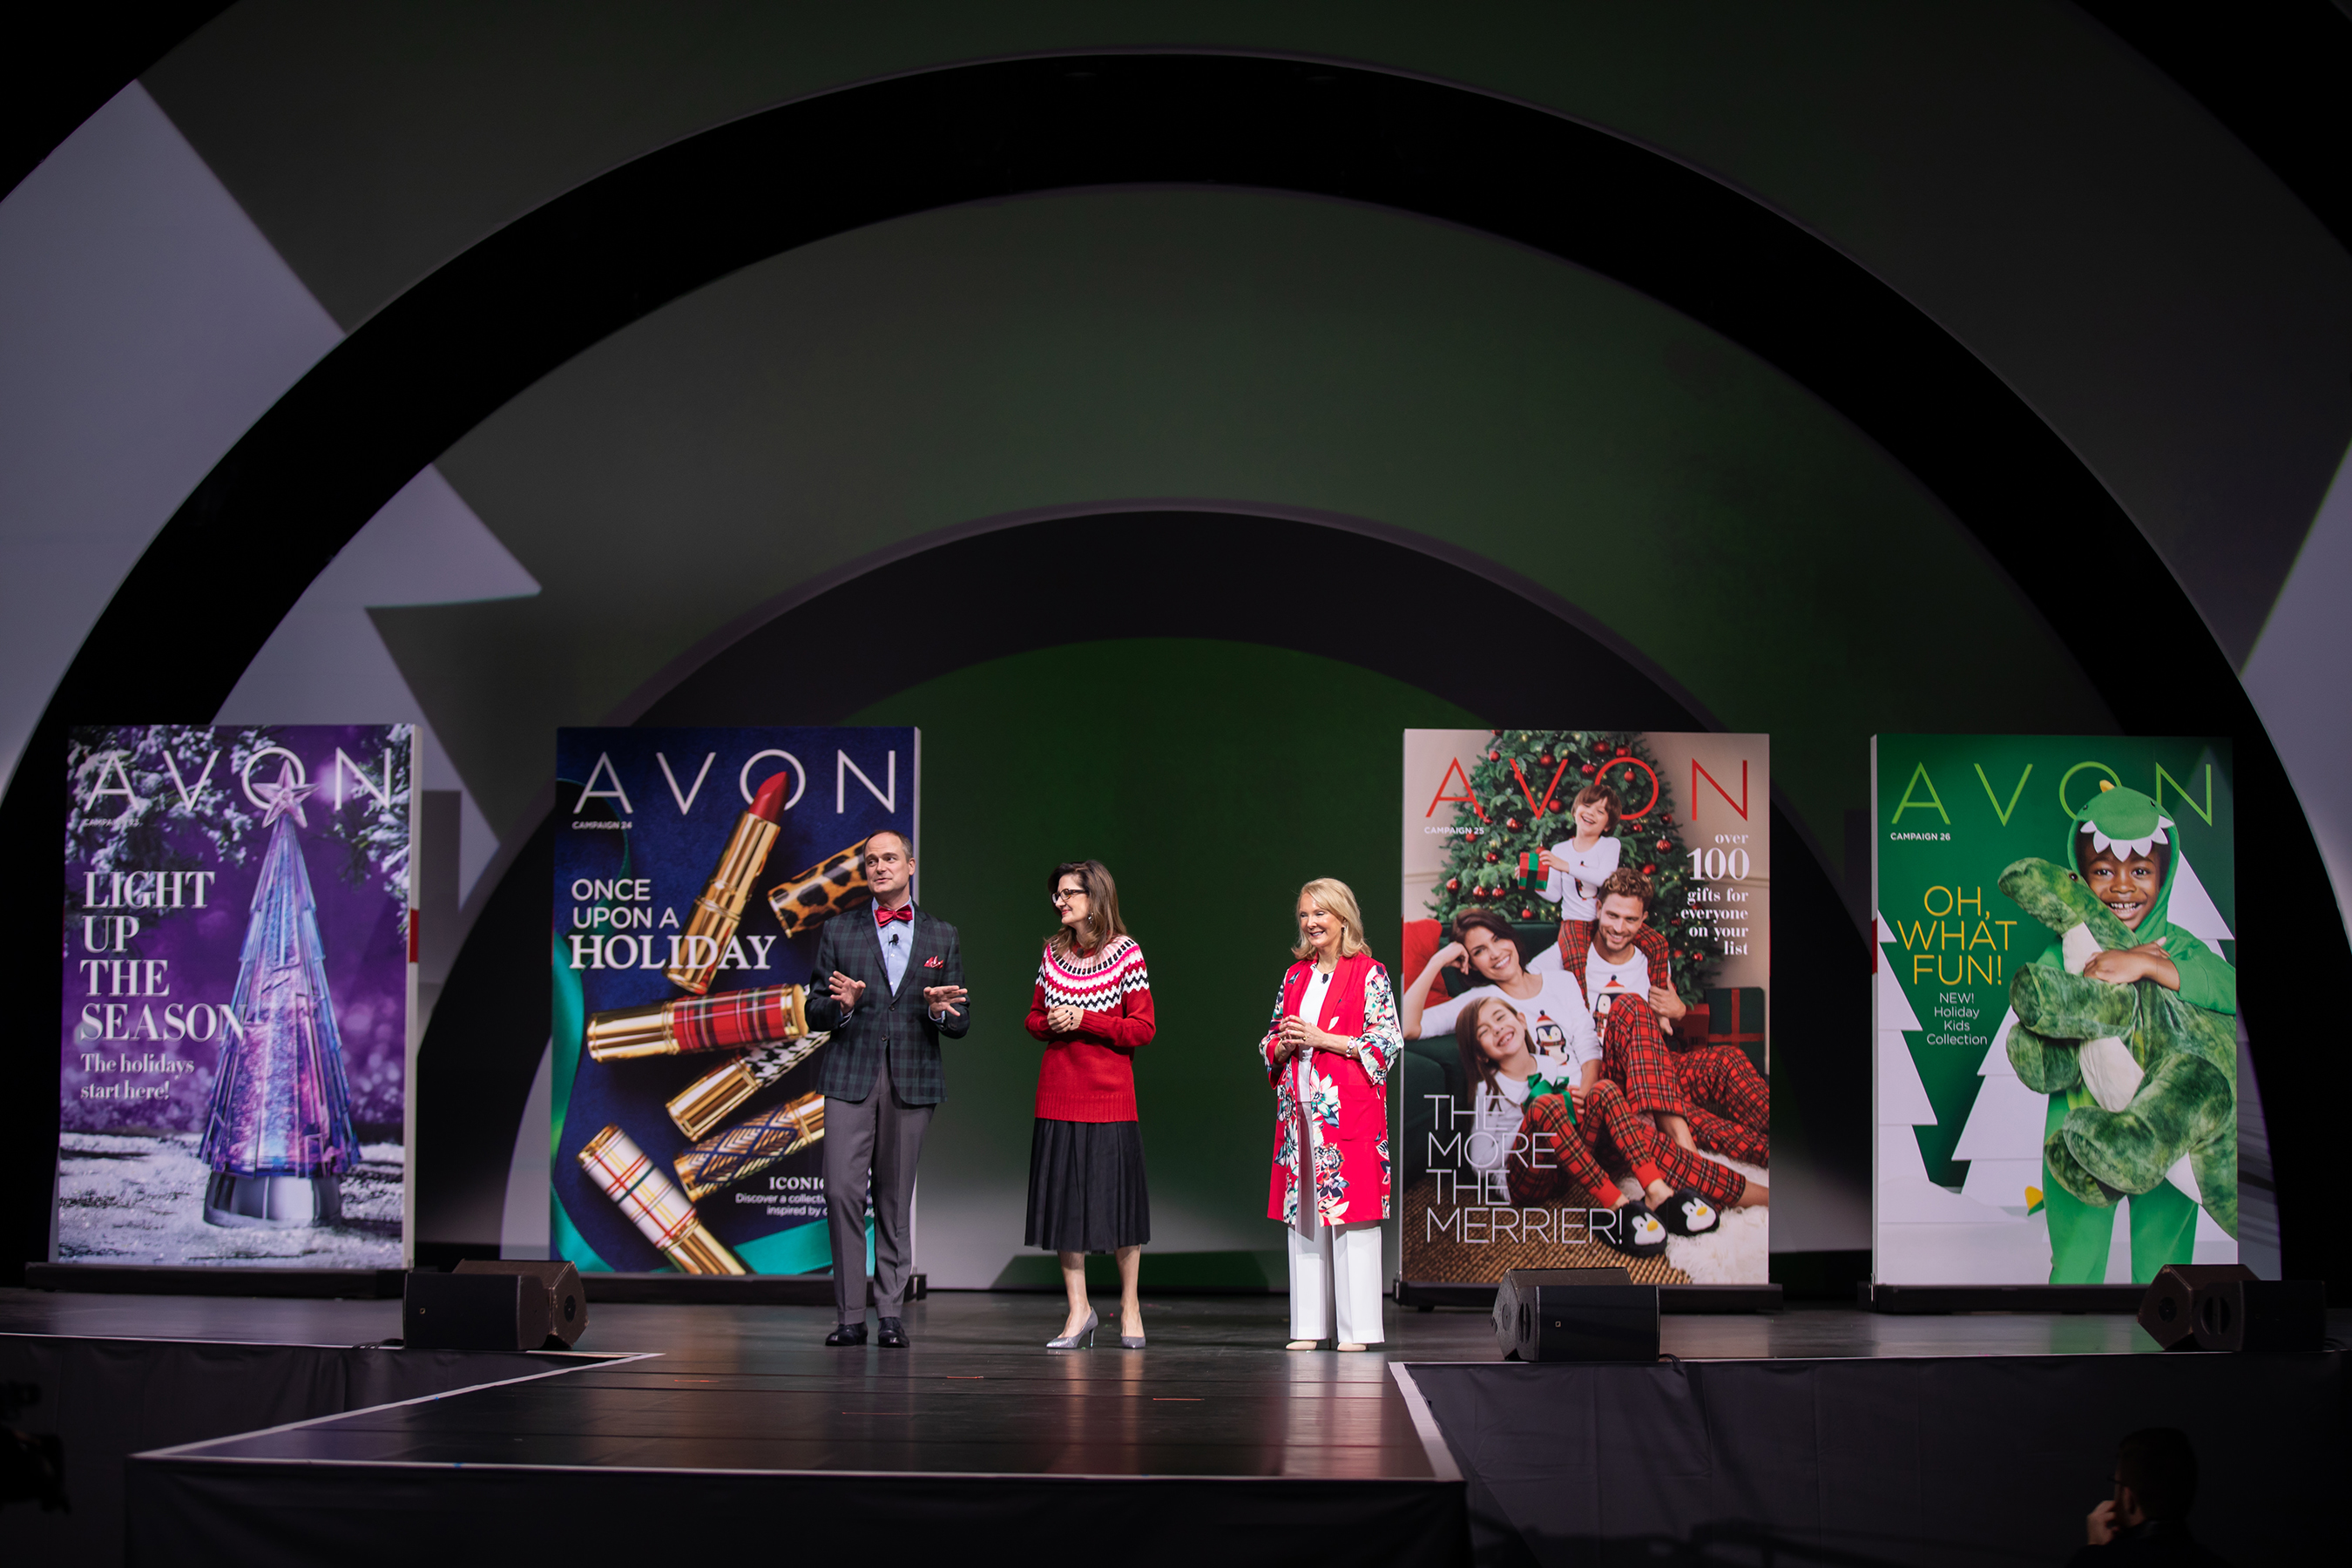 Avon Executives (From L to R- Michael Sengstack, Marketing Director, Fashion & Home, New Avon, LLC; Debi Theis, Vice President, Merchant, Marketing and Product Innovation, New Avon, LLC and Betty Palm, President, Social Selling for New Avon, LLC) preview Avon holiday collection to Avon Representatives at RepFest 2018.